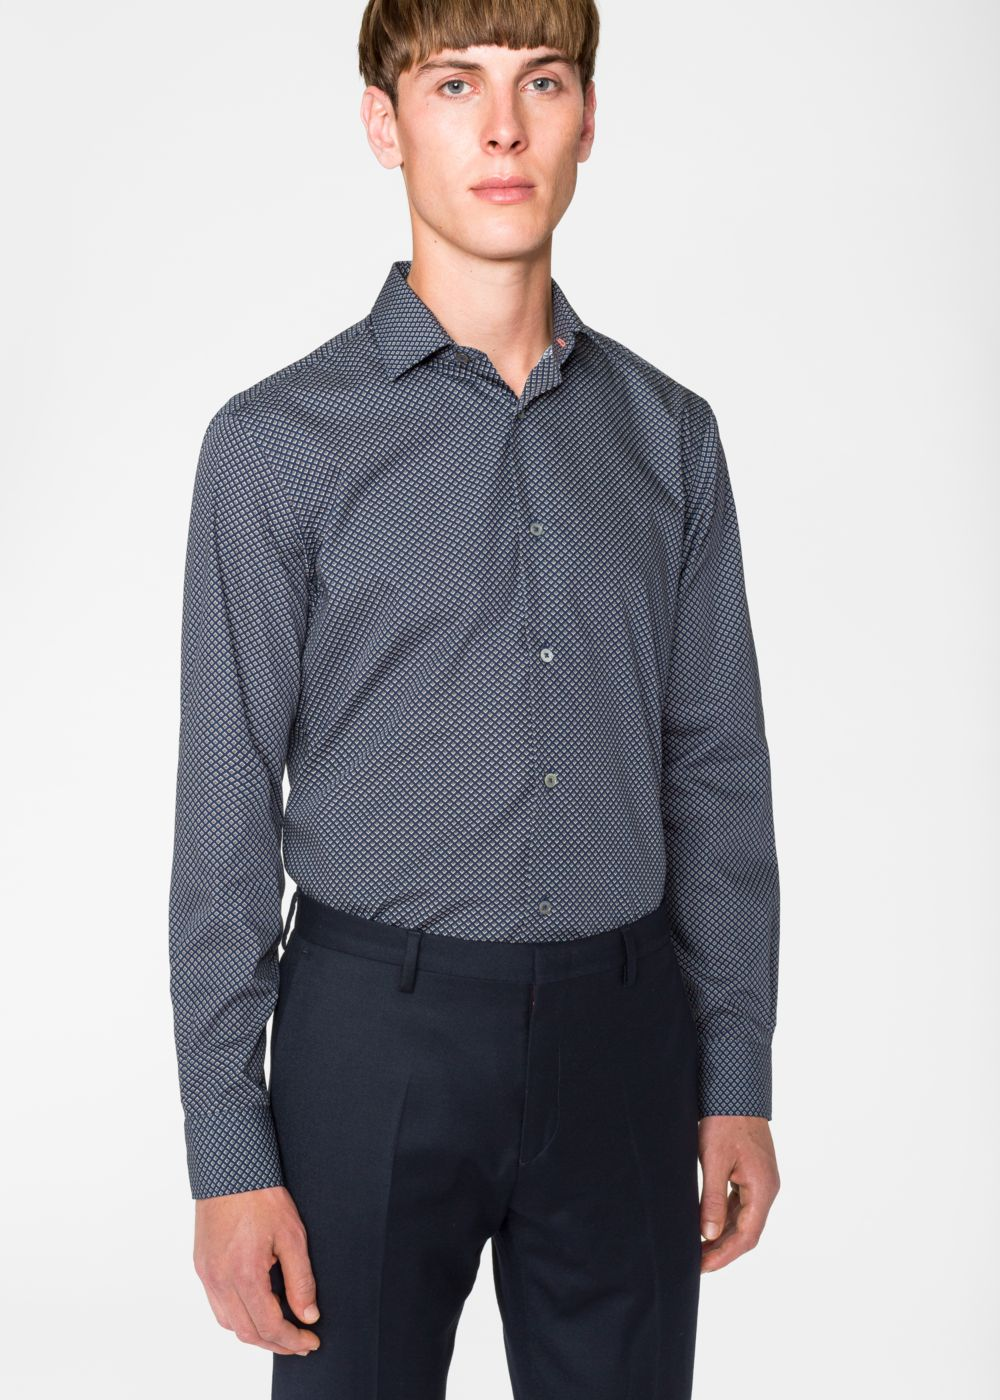 Paul Smith Men's Classic-Fit Grey 'Tie' Print Shirt With 'Tudor Rose' Cuff Lining